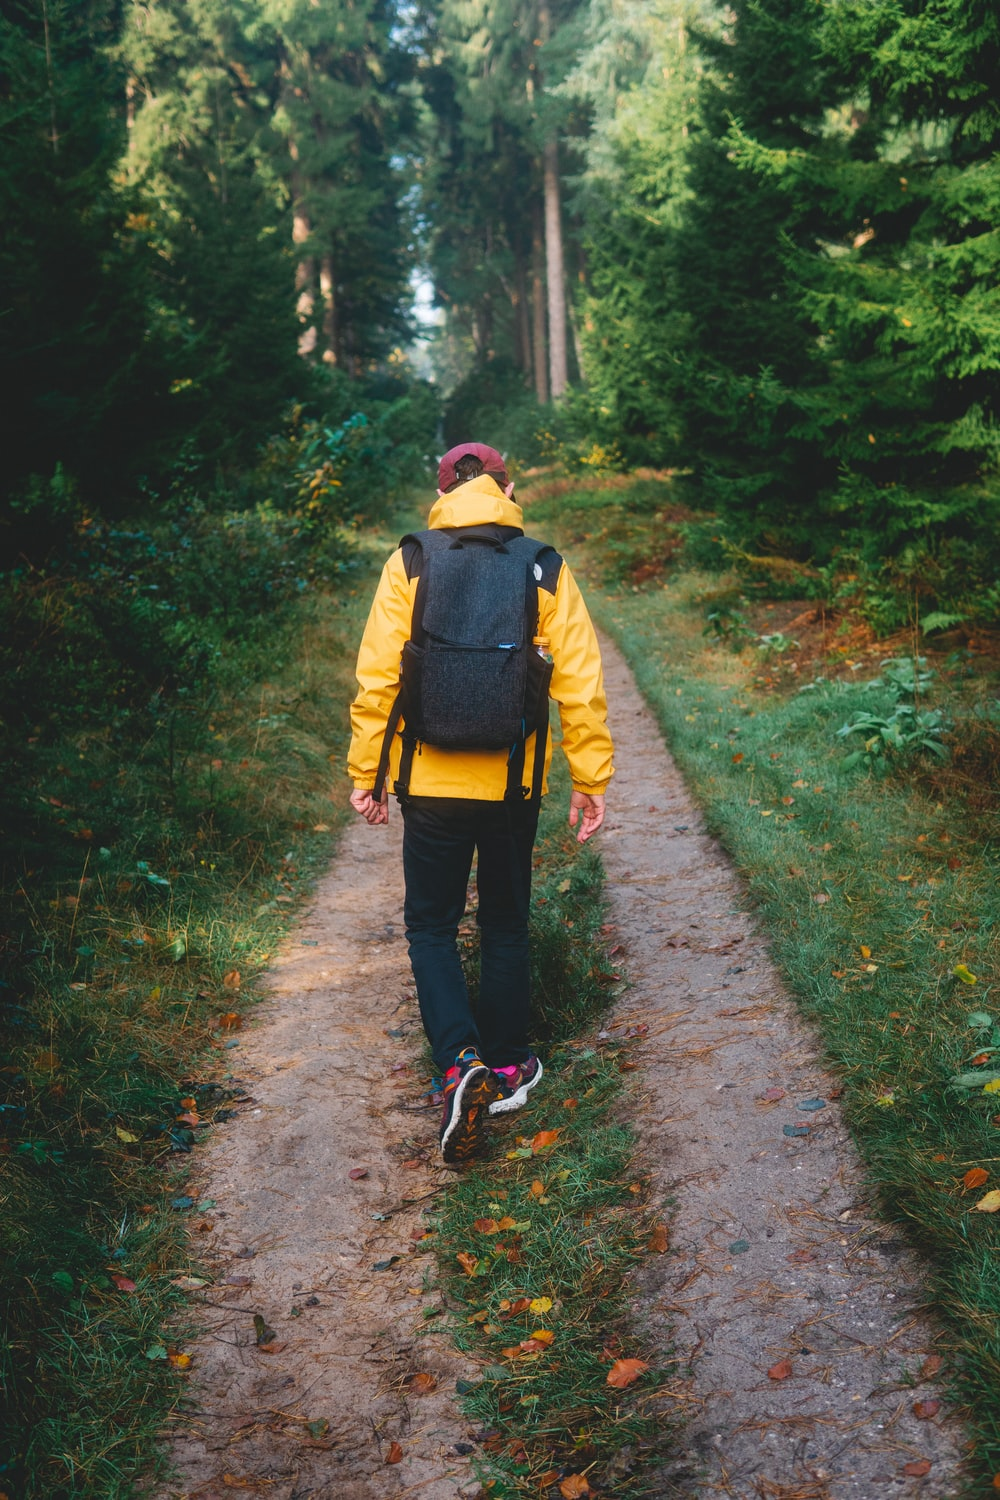 person in yellow jacket walking on pathway